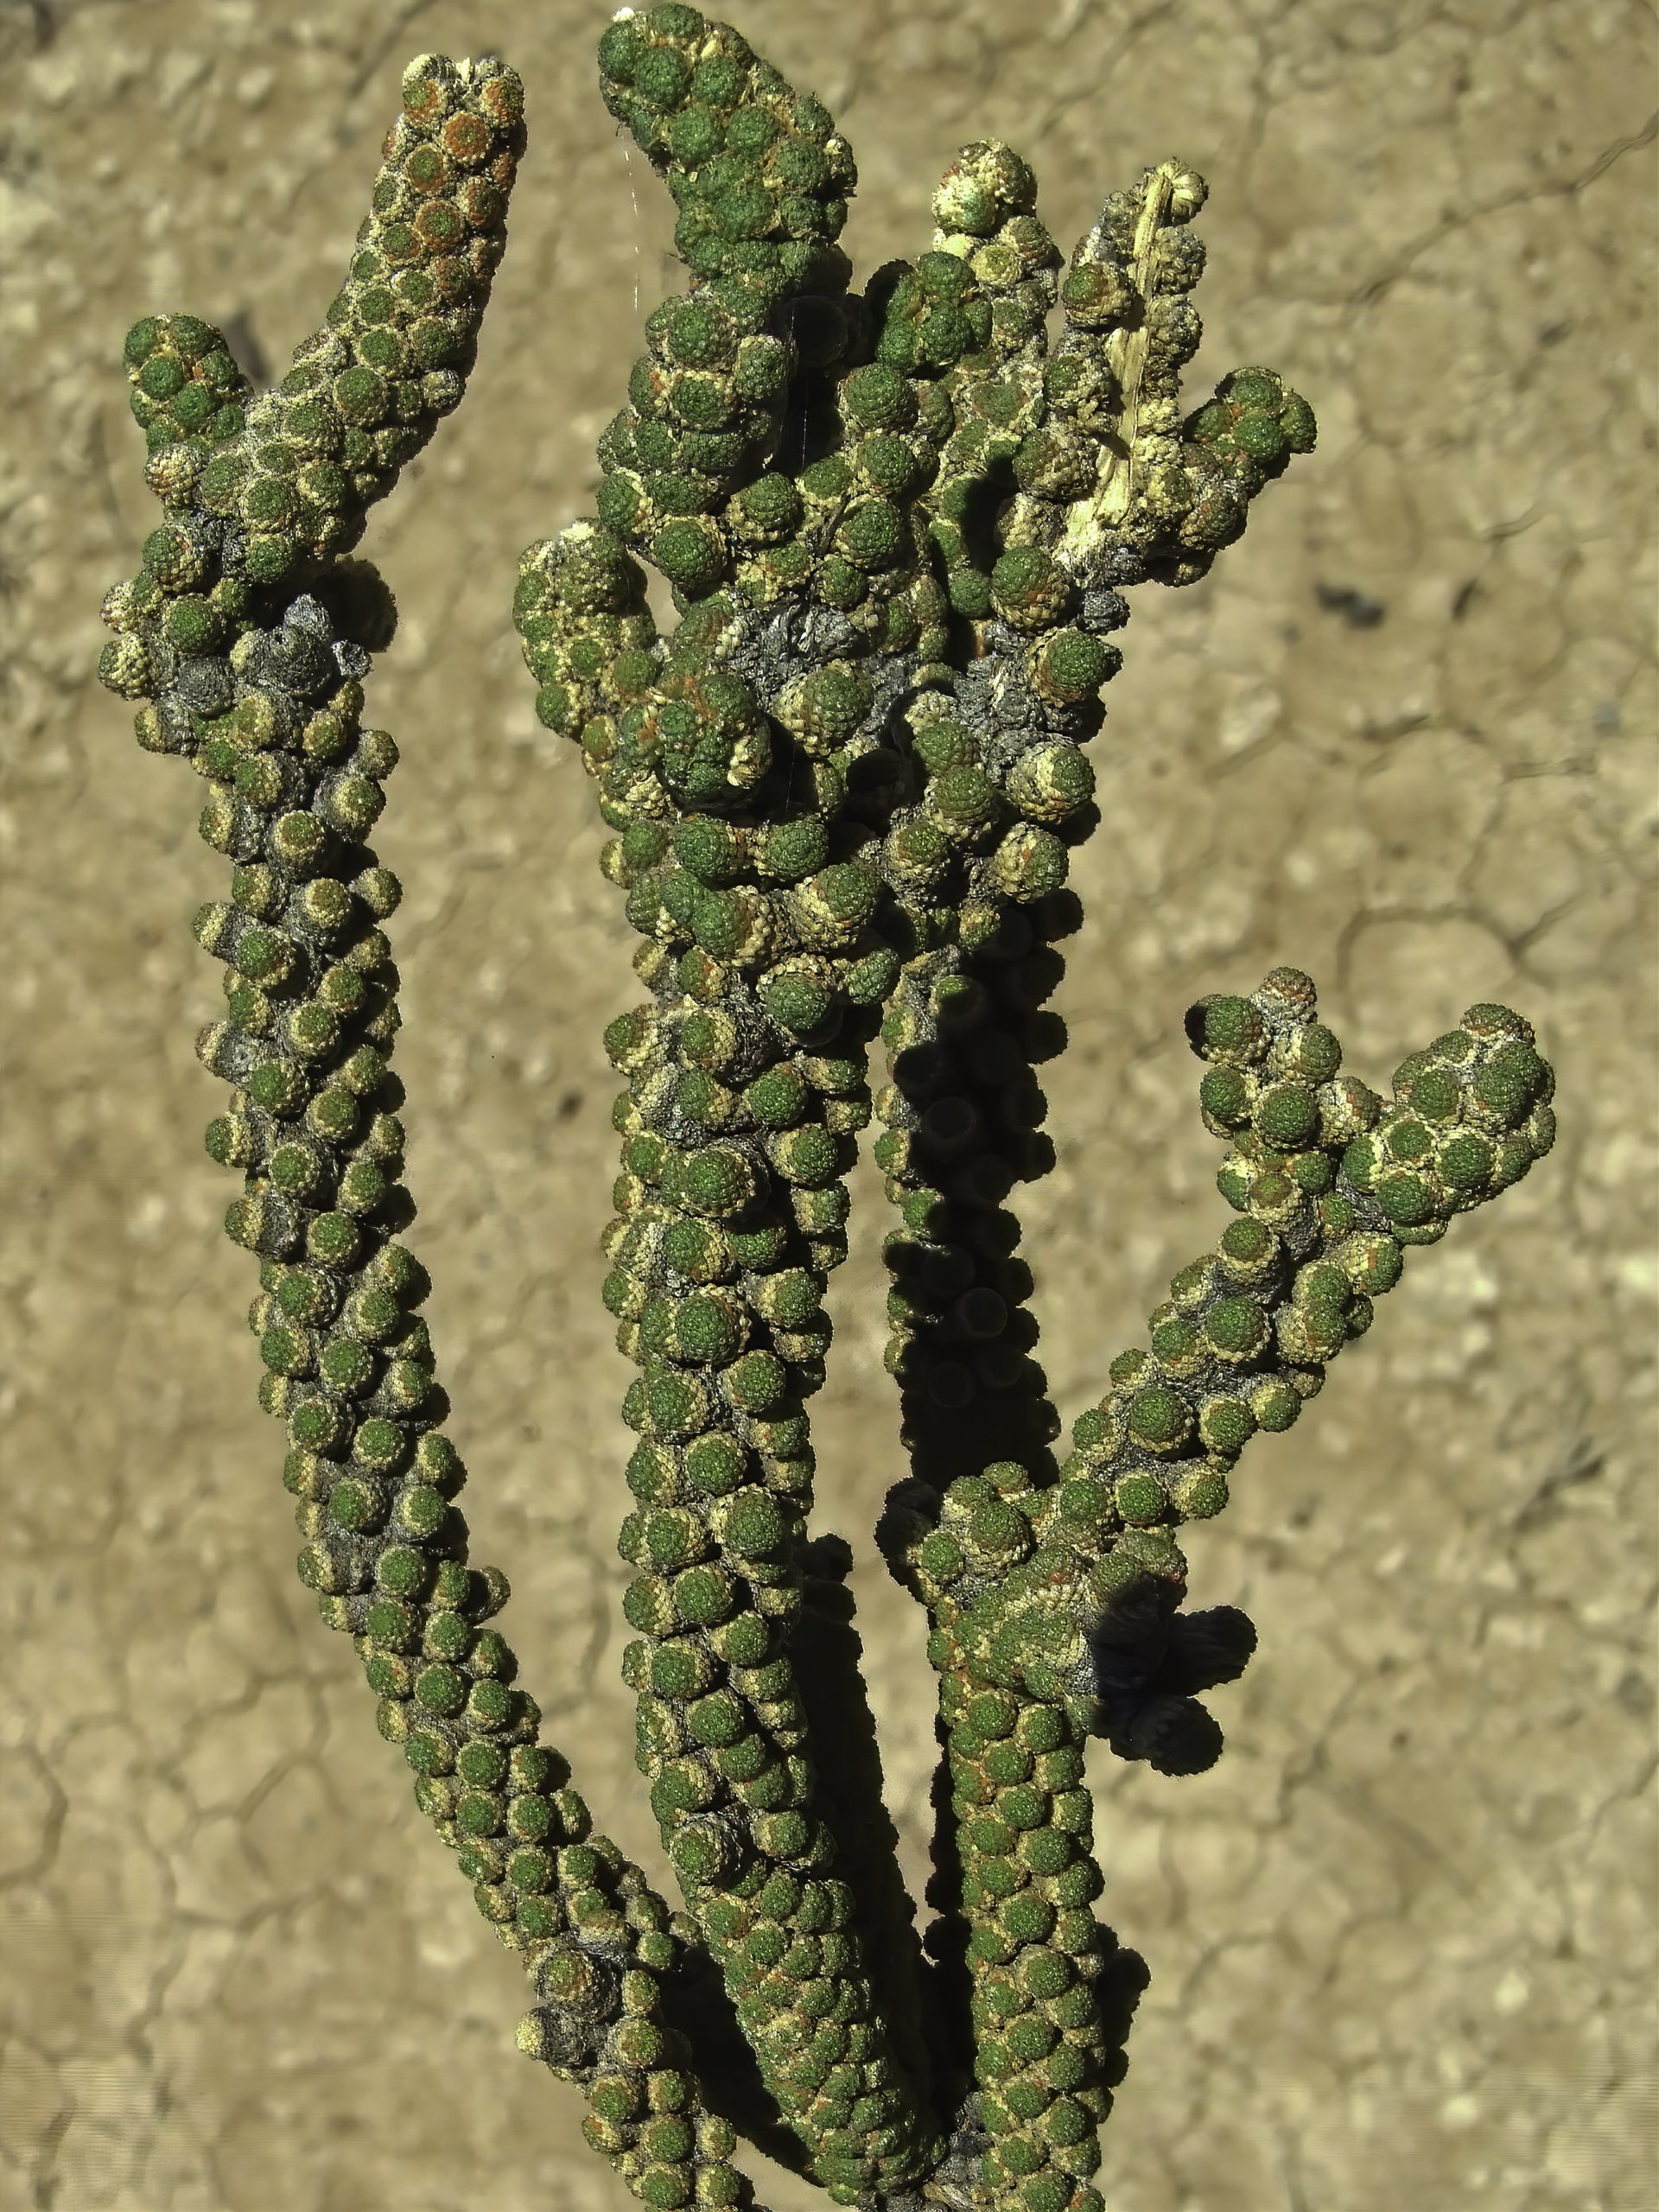 Tiganophyton karasense with its unique scaly leaves. Image by Wessel Swanepoel.